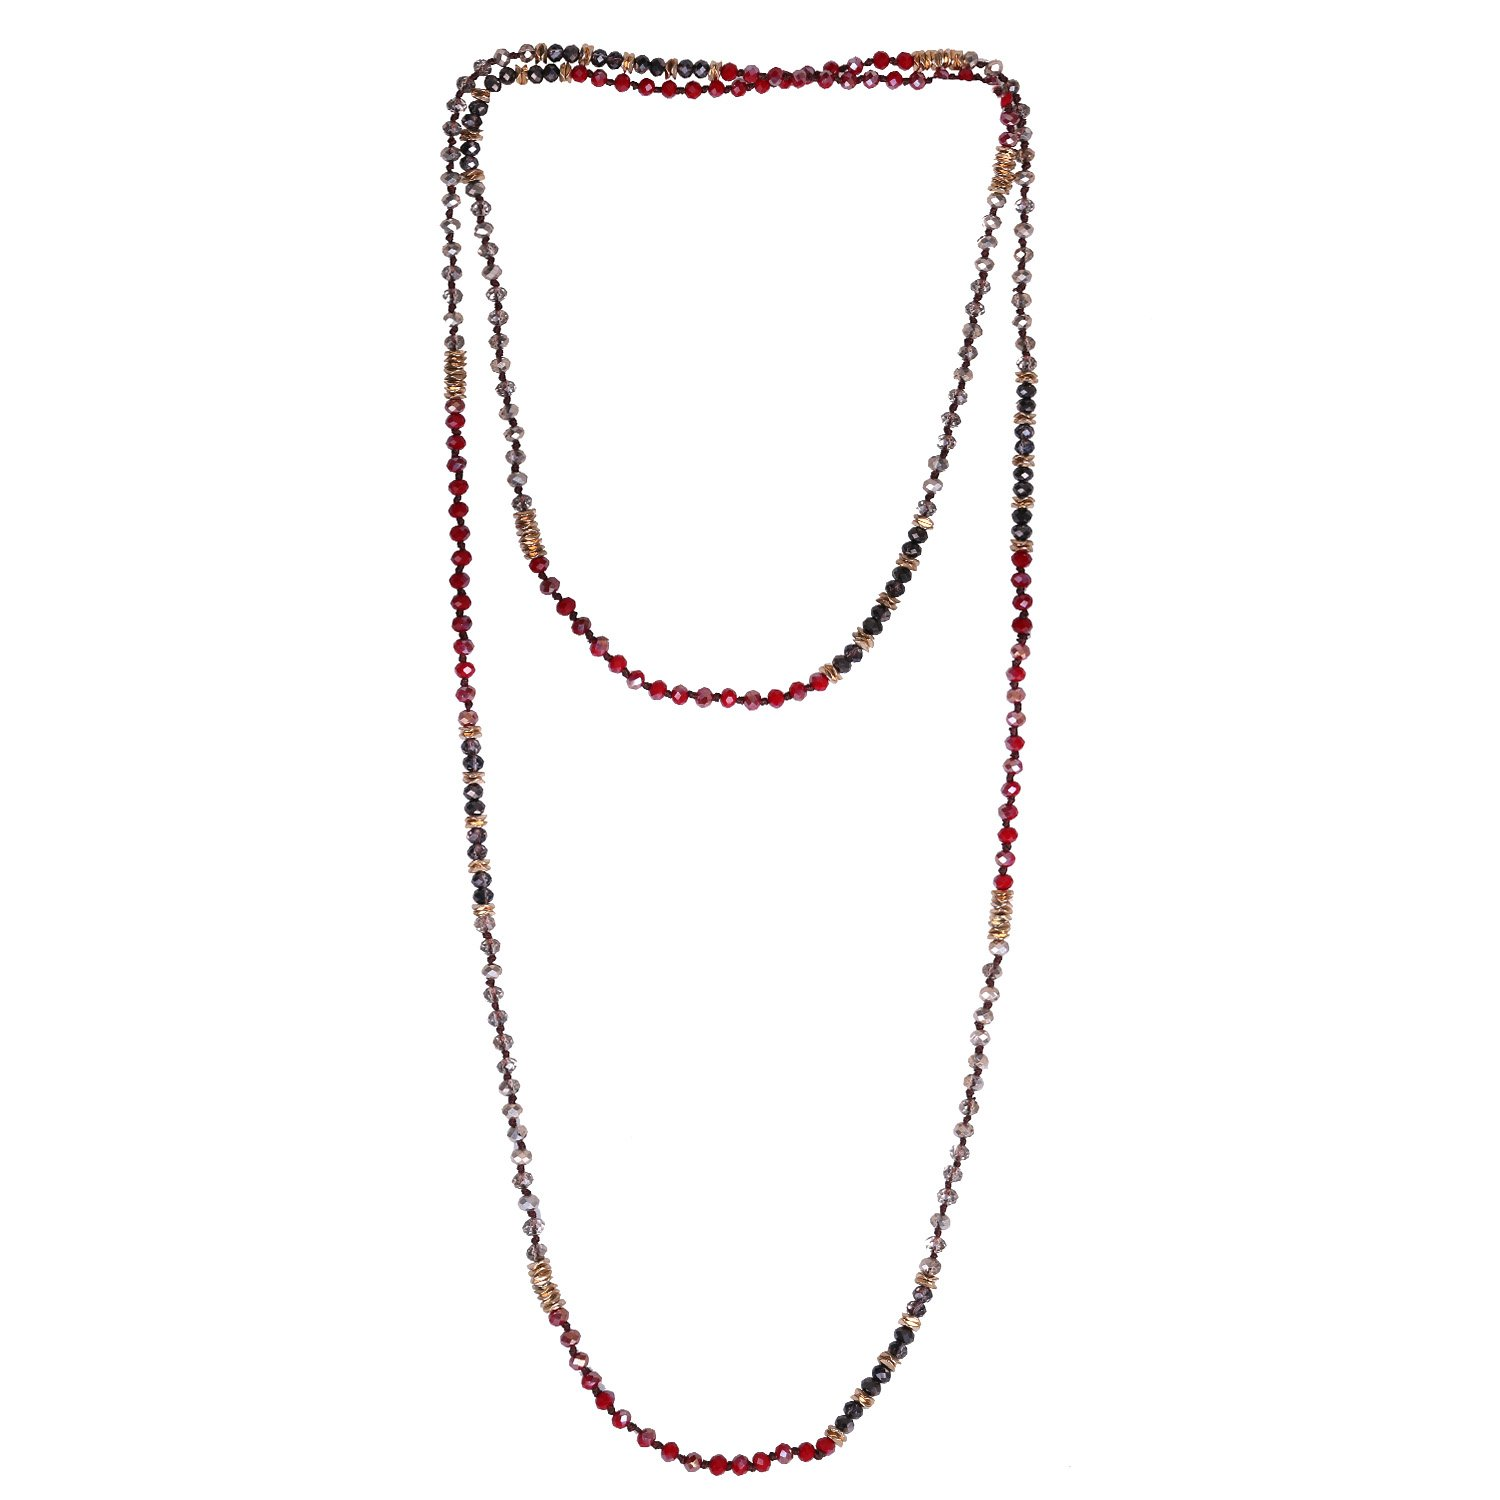 KELITCH Crystal Beaded Necklace Double Wrap Necklace Boho Tribal Women Necklace AMN-17063AK